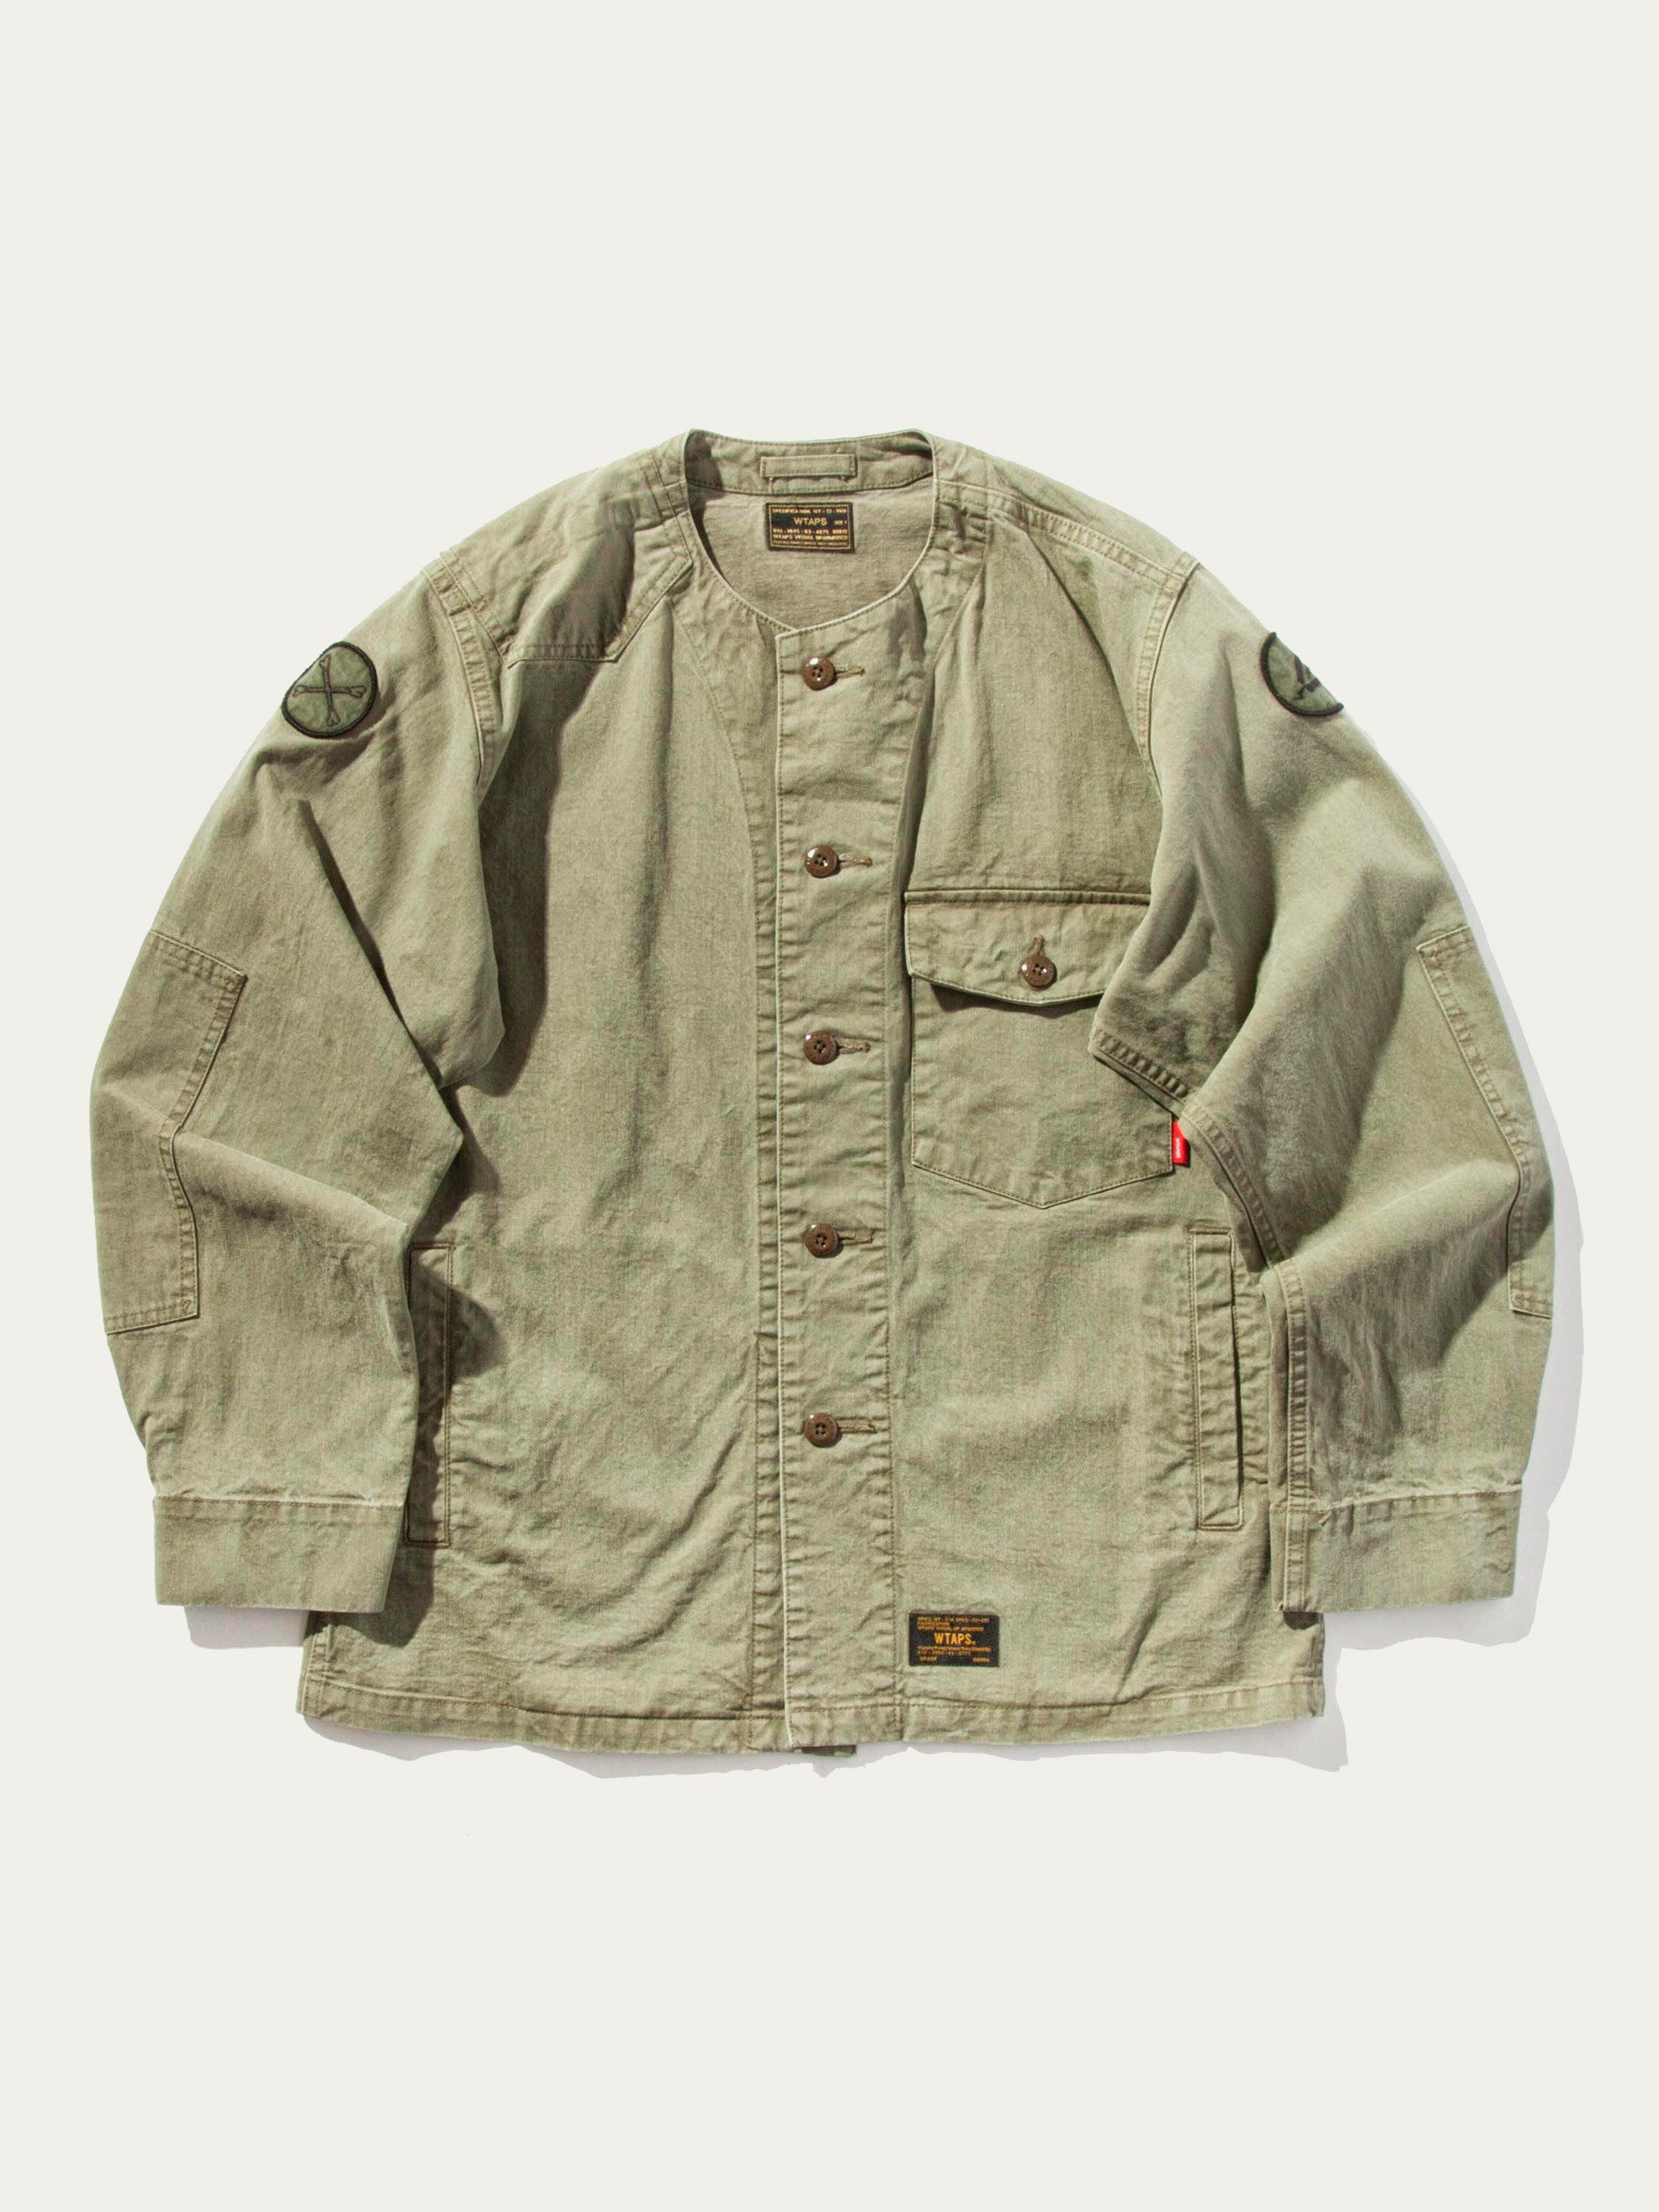 Scout LS 02 Shirt (Cotton Chino)